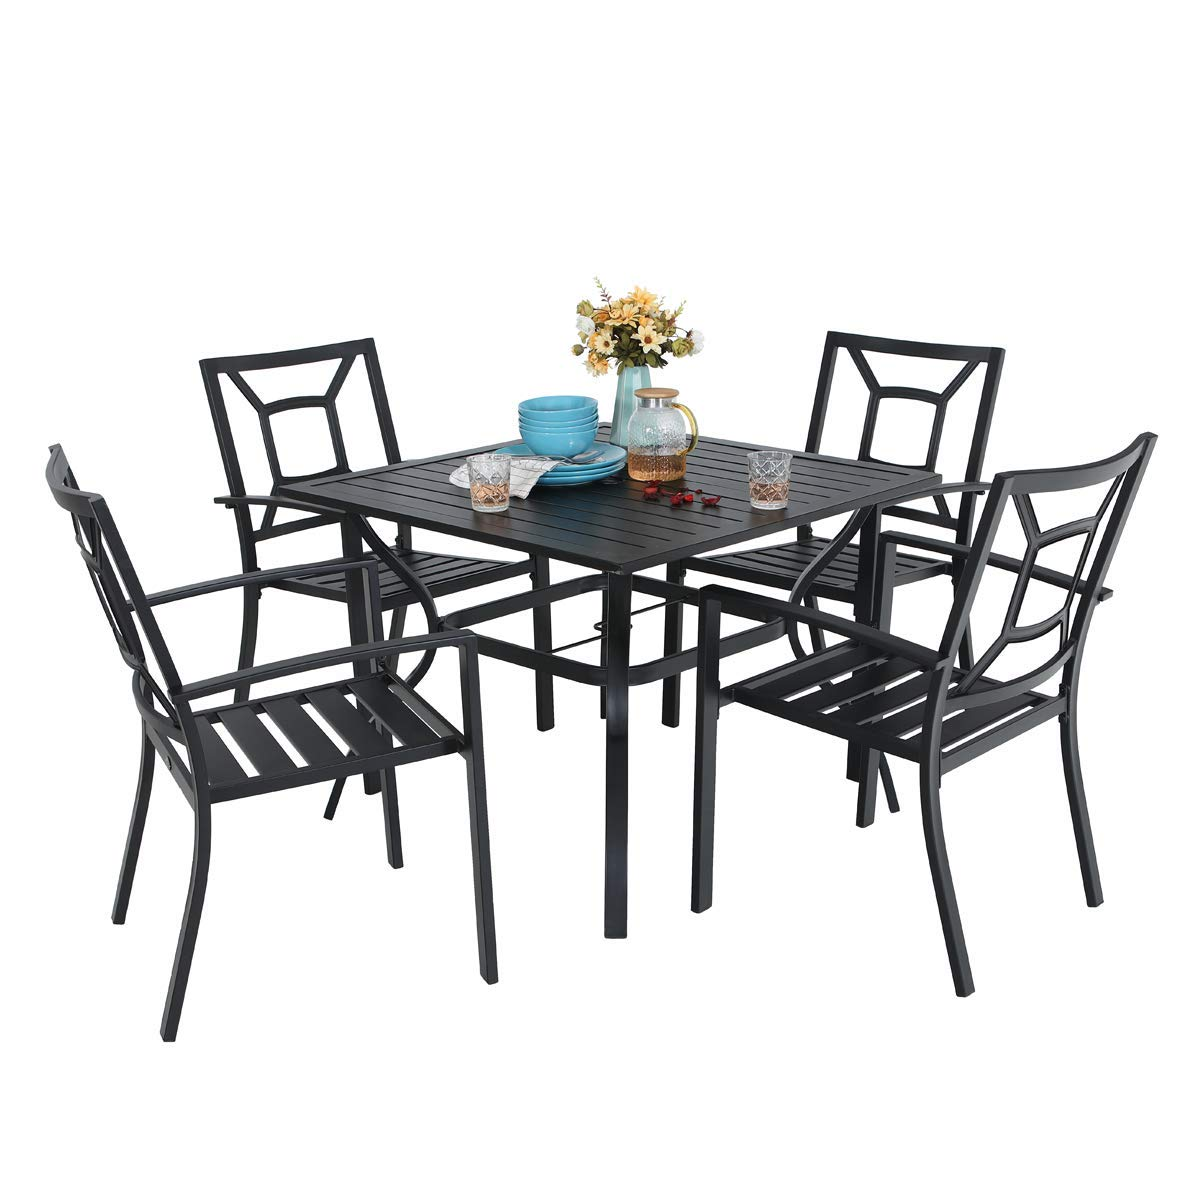 PHI VILLA 5 Piece Patio Armrest Dining Chairs and Large Square Table Set